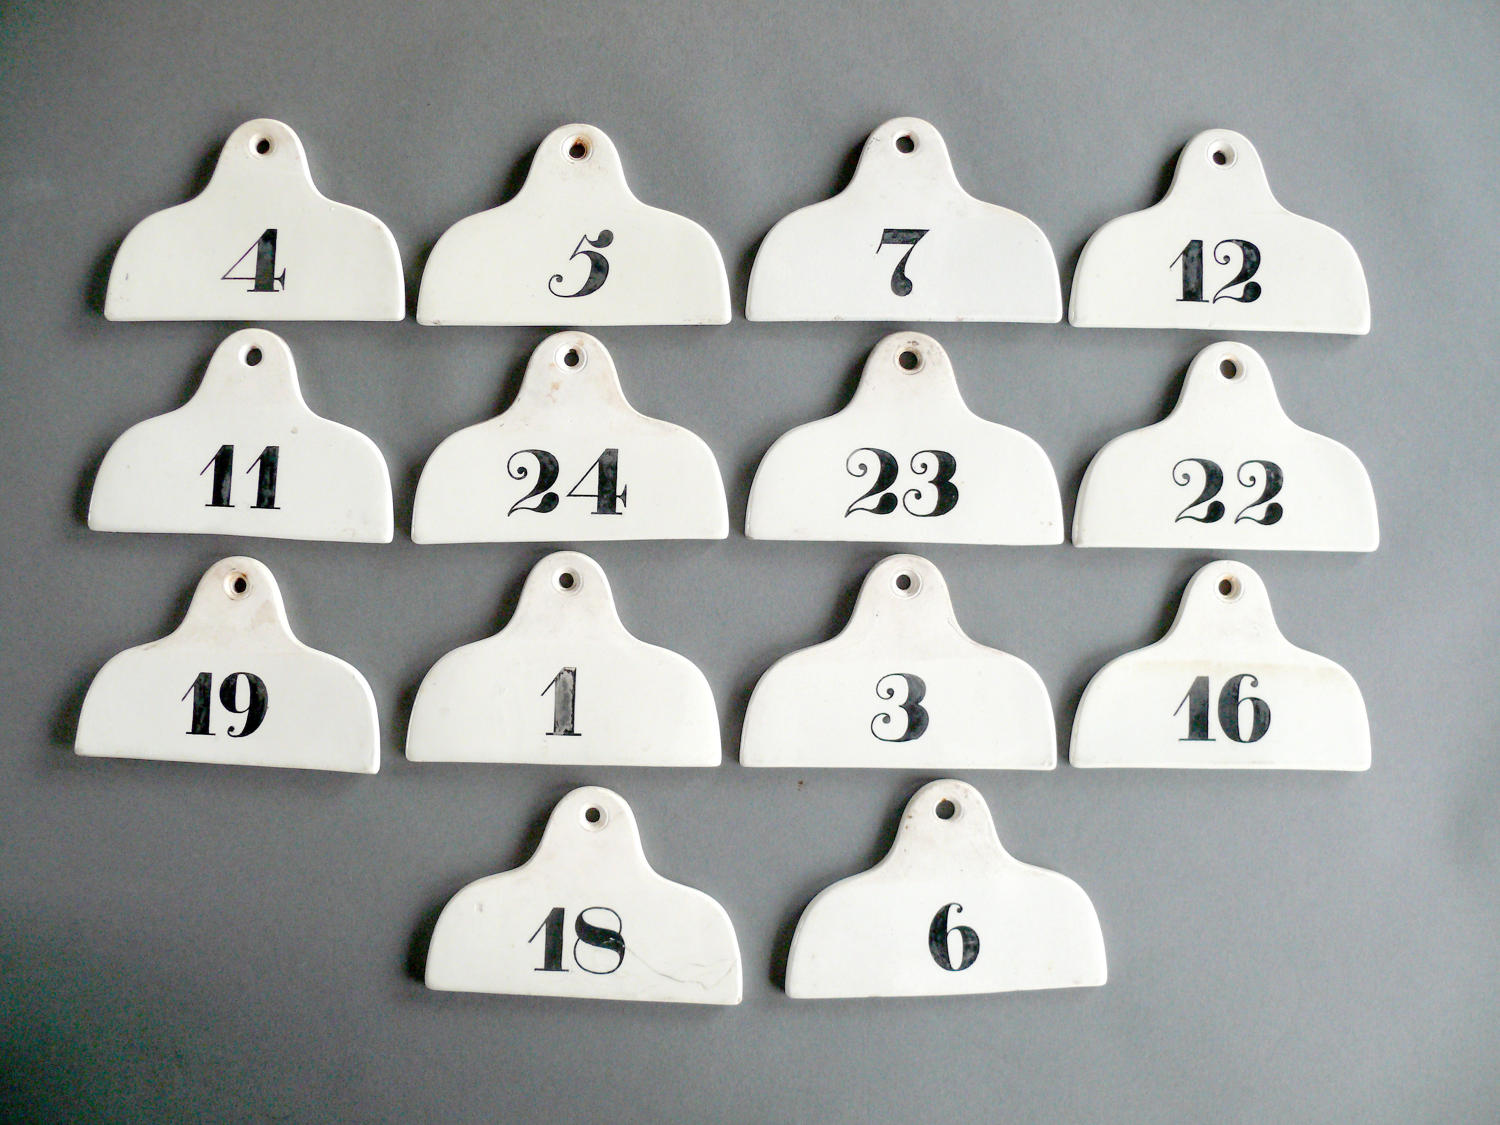 A rare set of 14 'coathanger' bin numbers